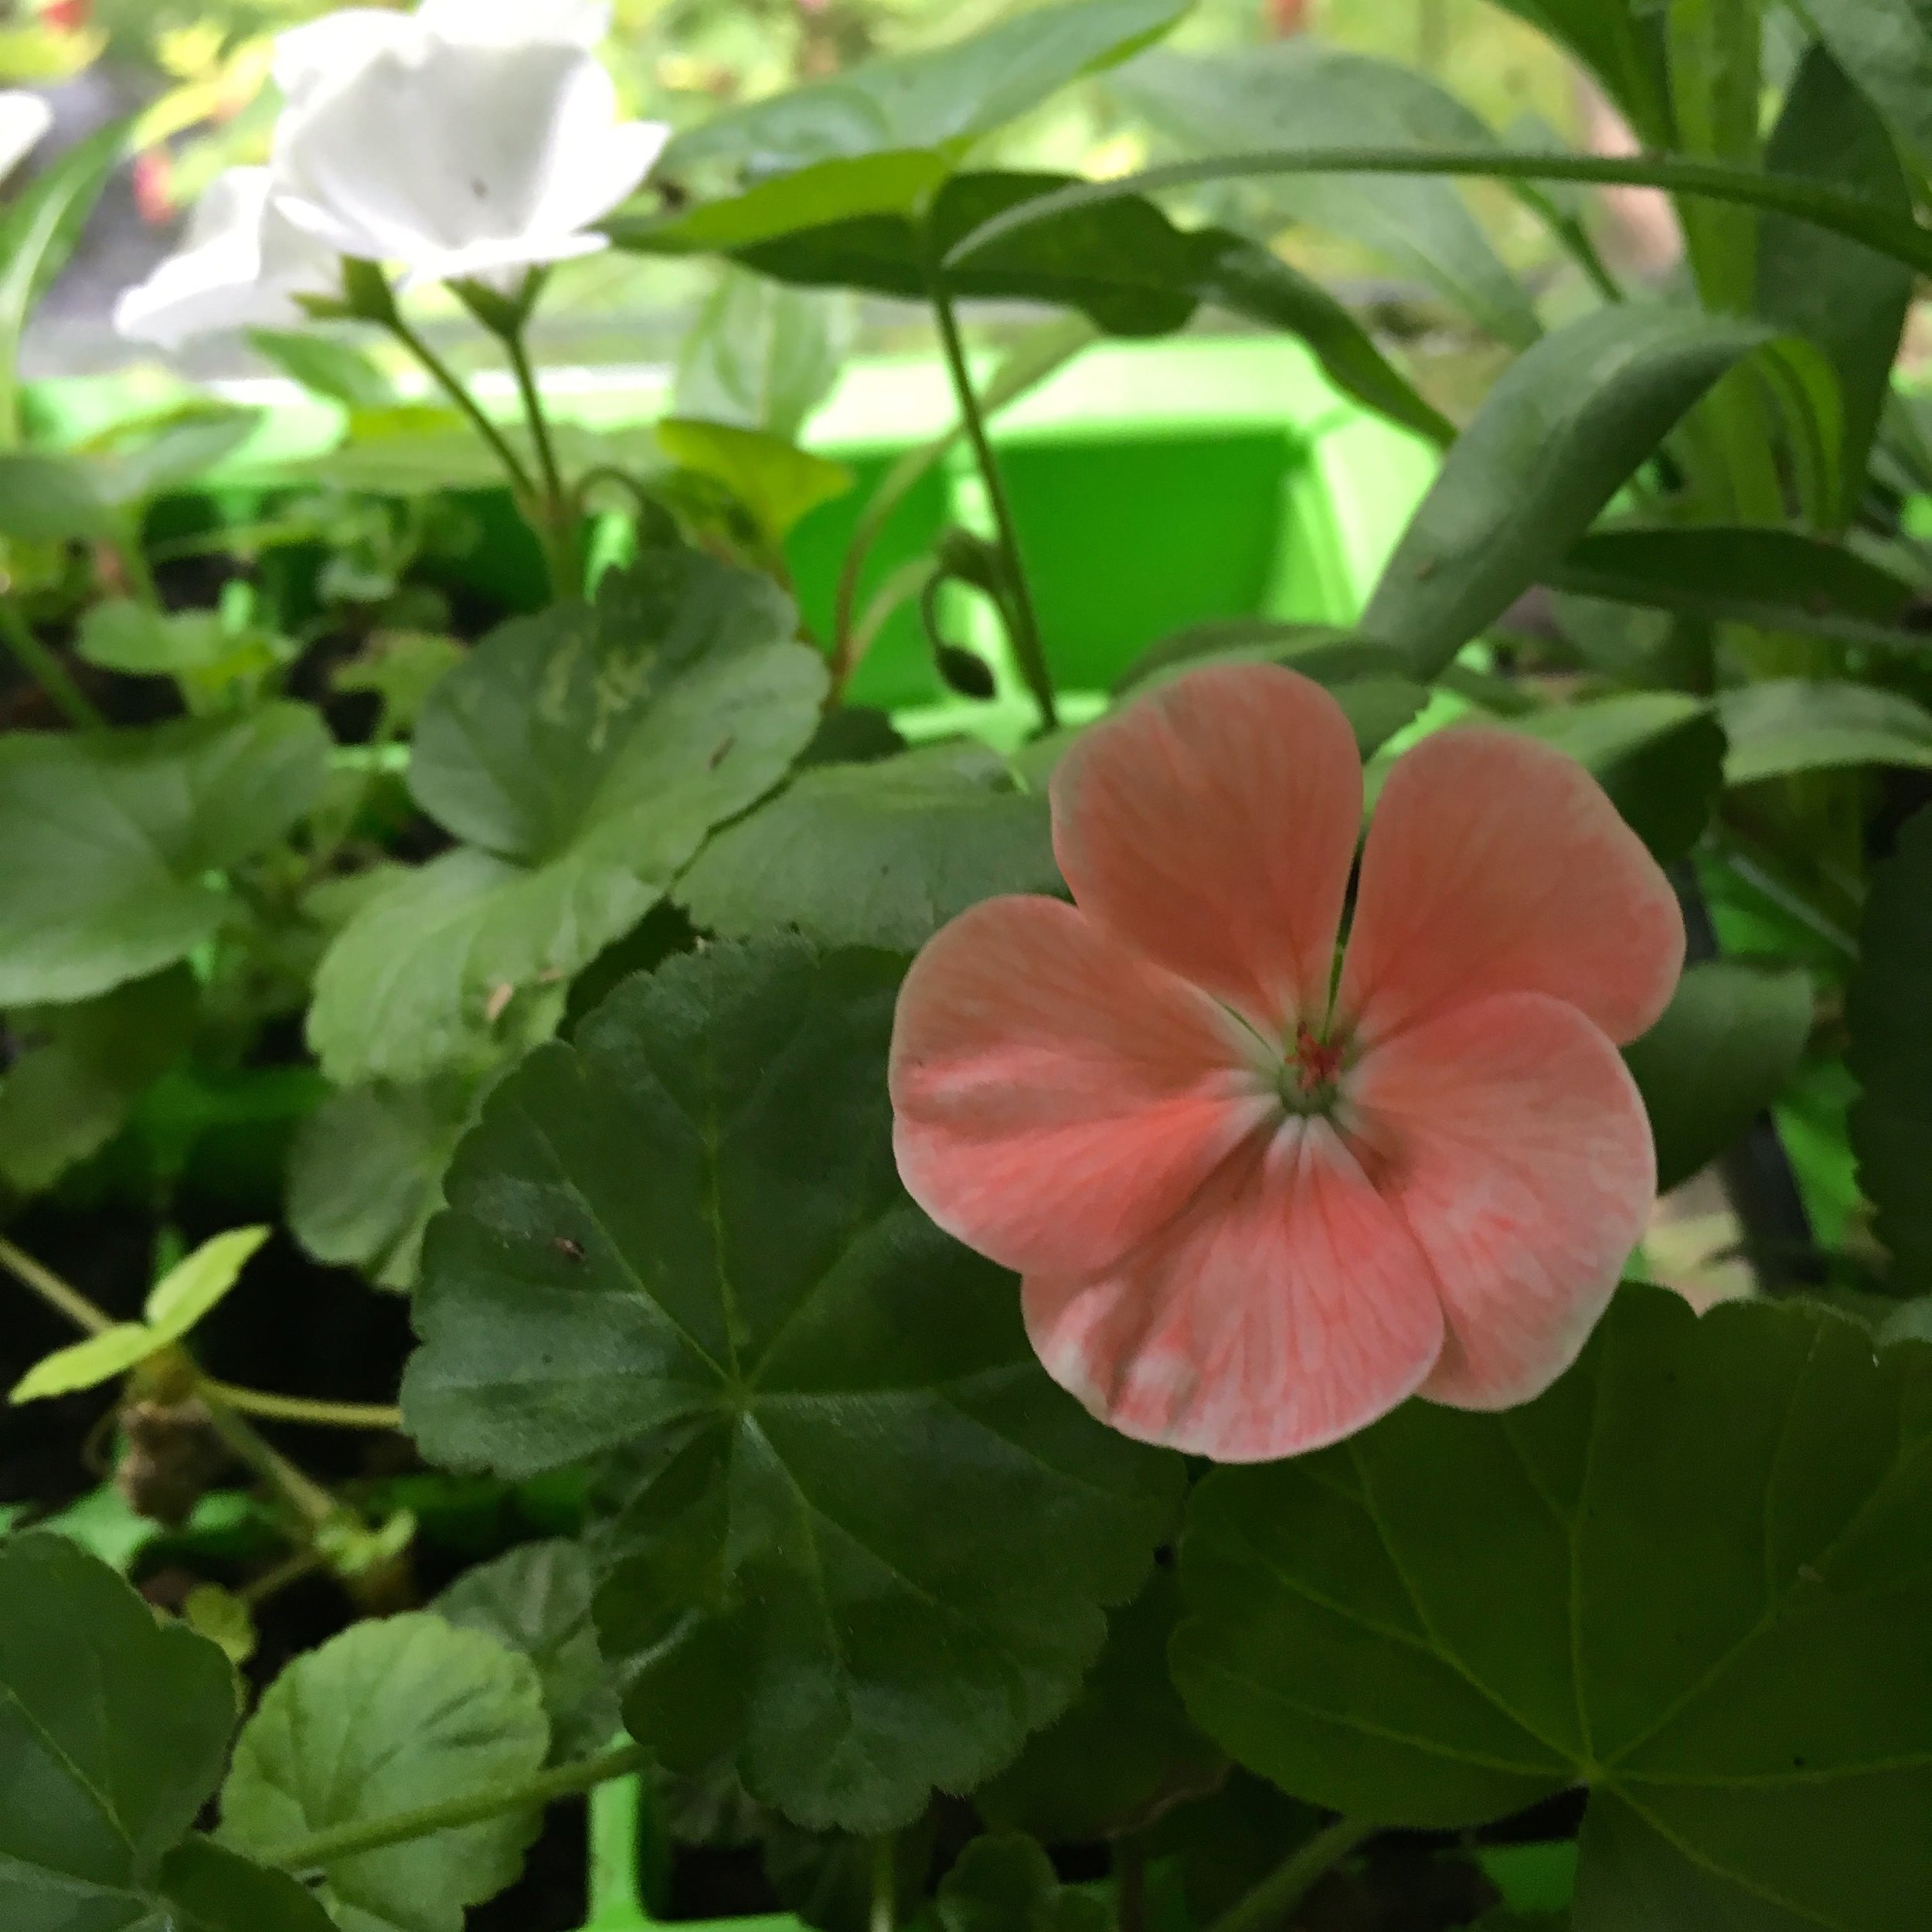 A delicate flower from the bedding plants I ordered much earlier in the year